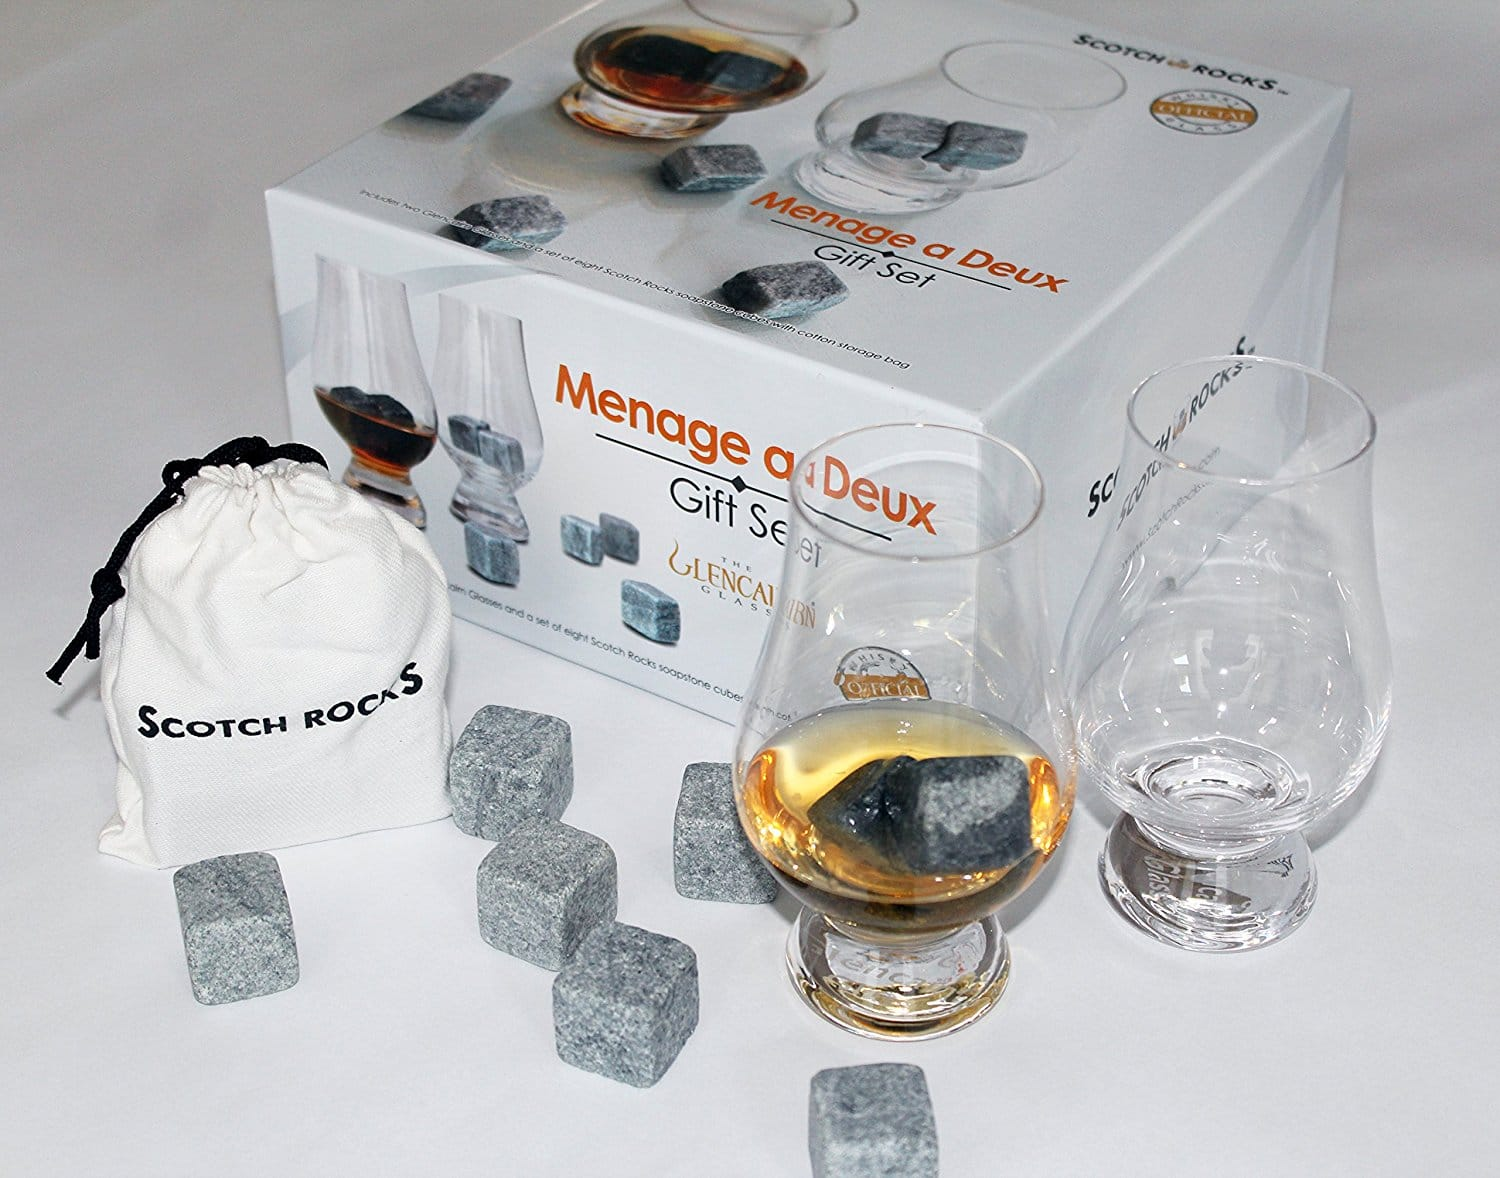 Scotch Rocks Gift Set